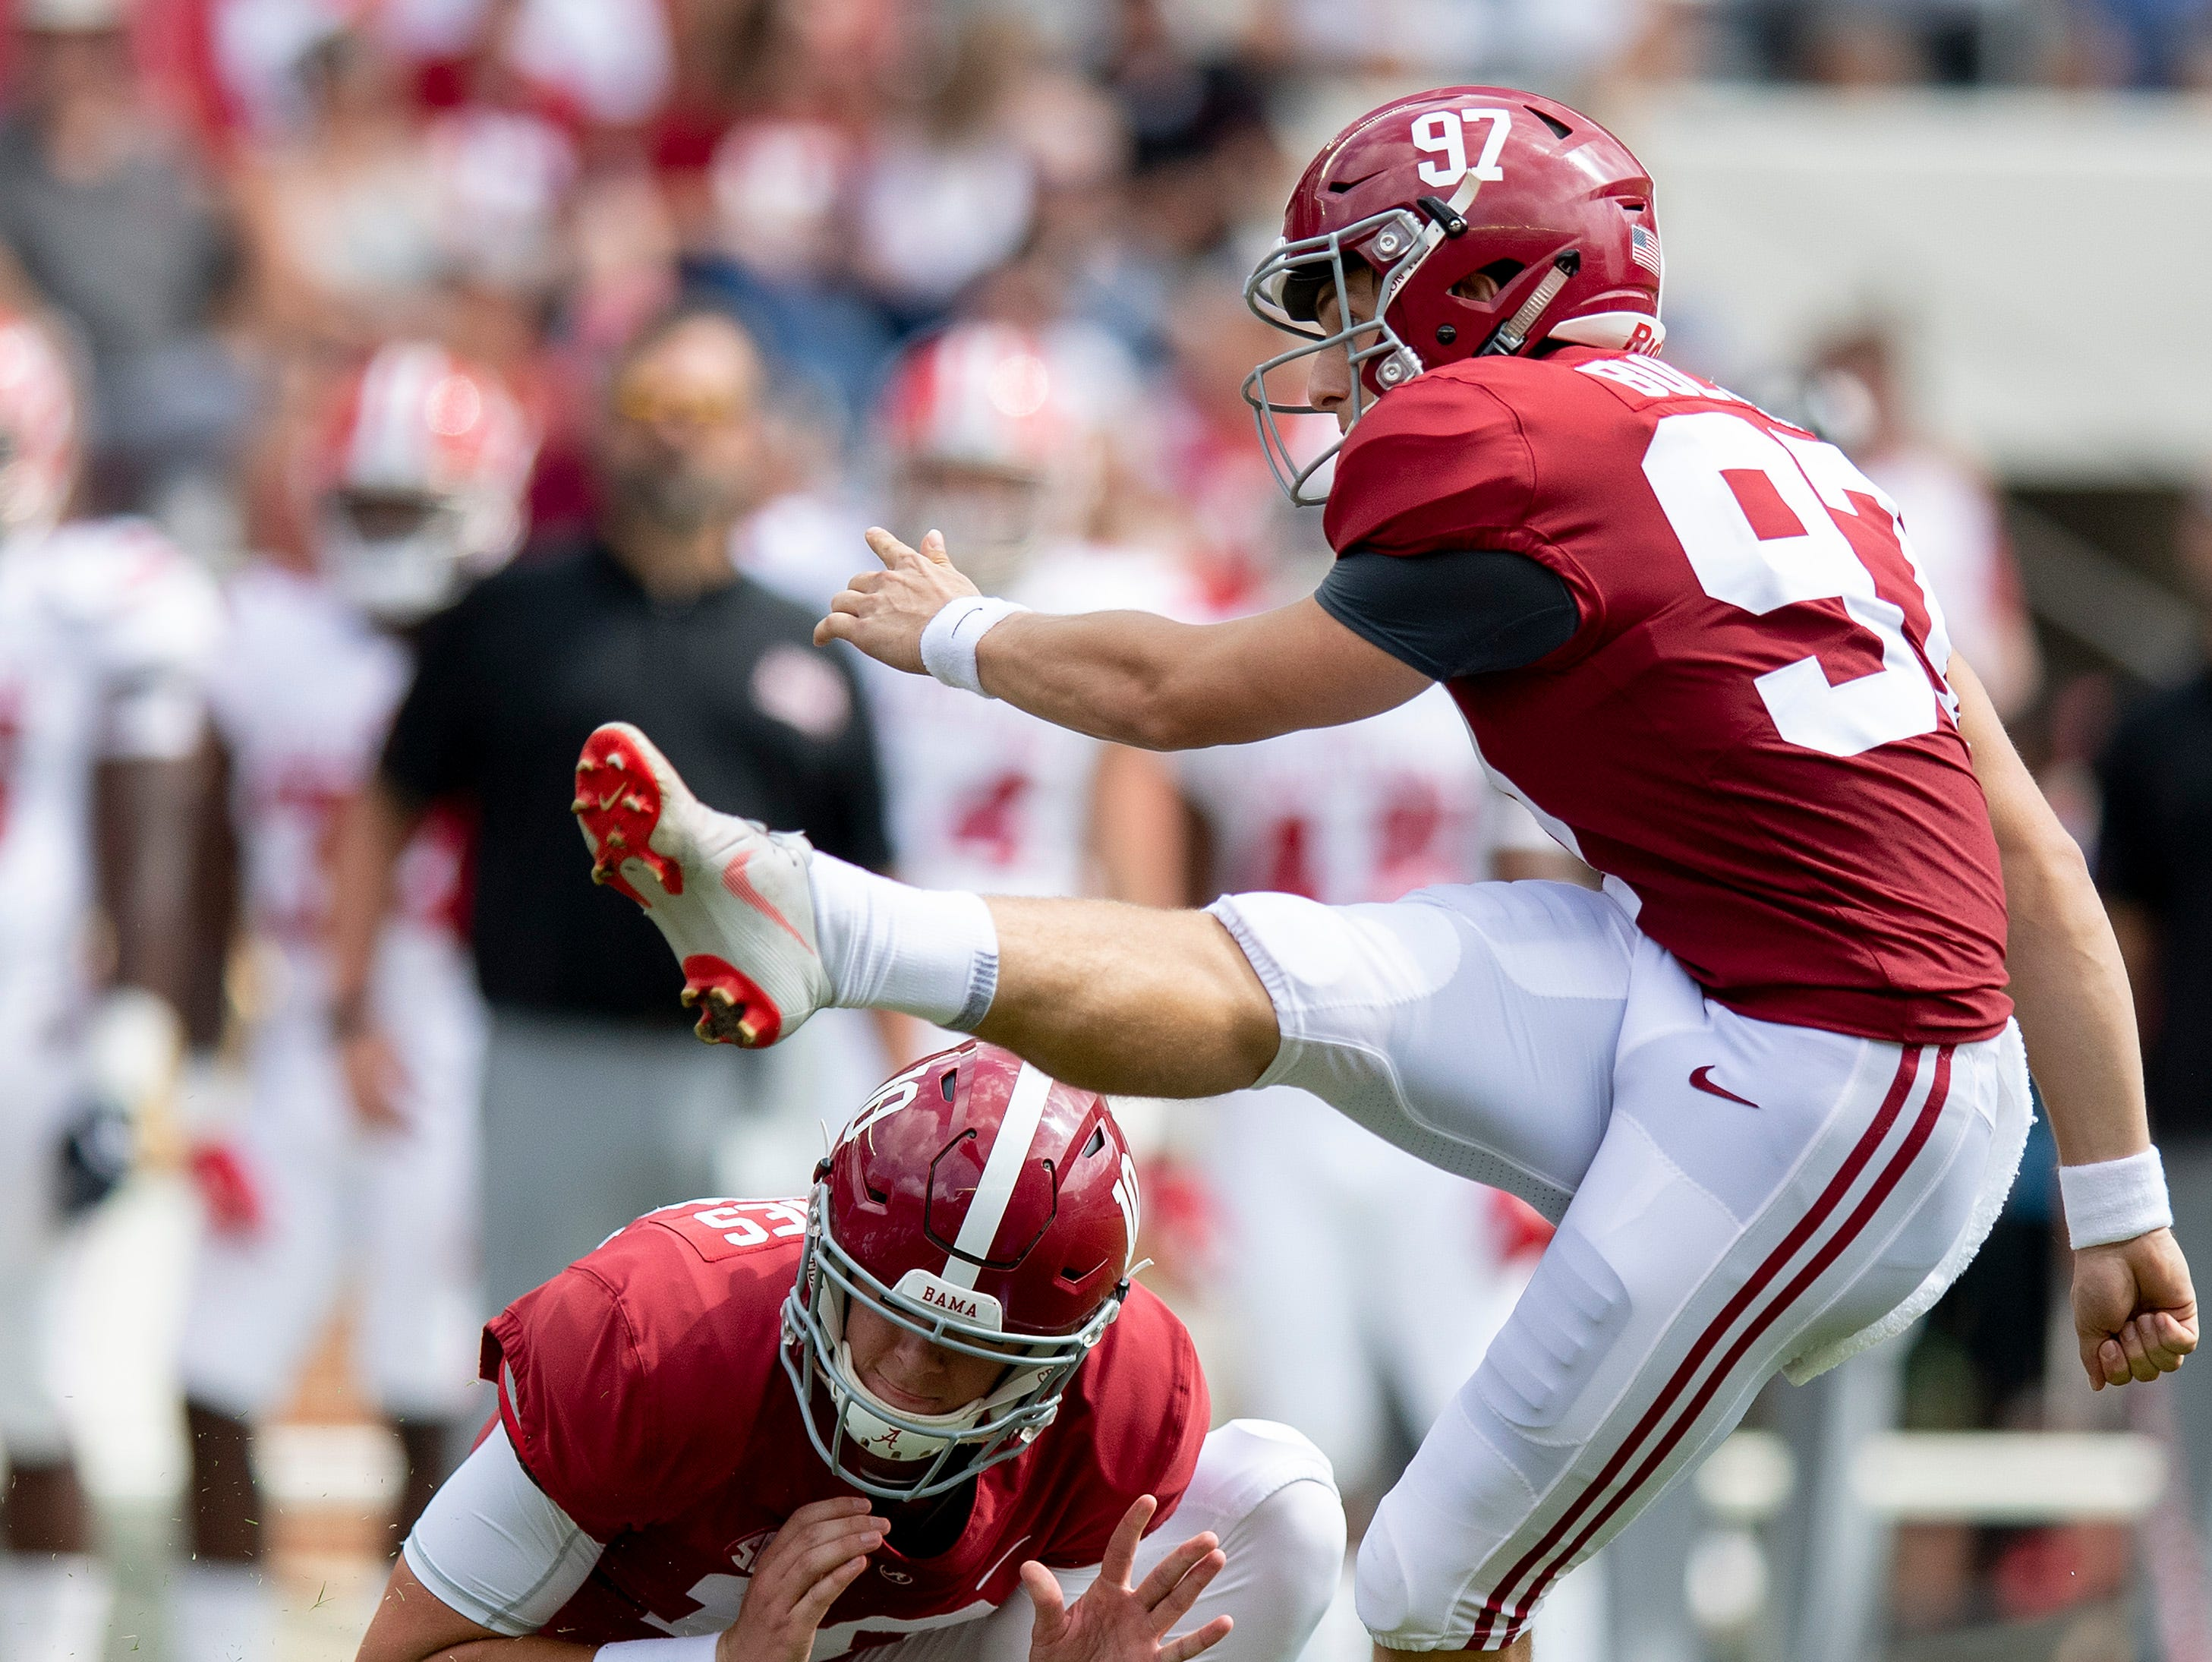 Alabama kicker Joseph Bulovas (97) misses his second field goal of the game against Louisiana  at Bryant-Denny Stadium in Tuscaloosa, Ala., on Saturday September 29, 2018.